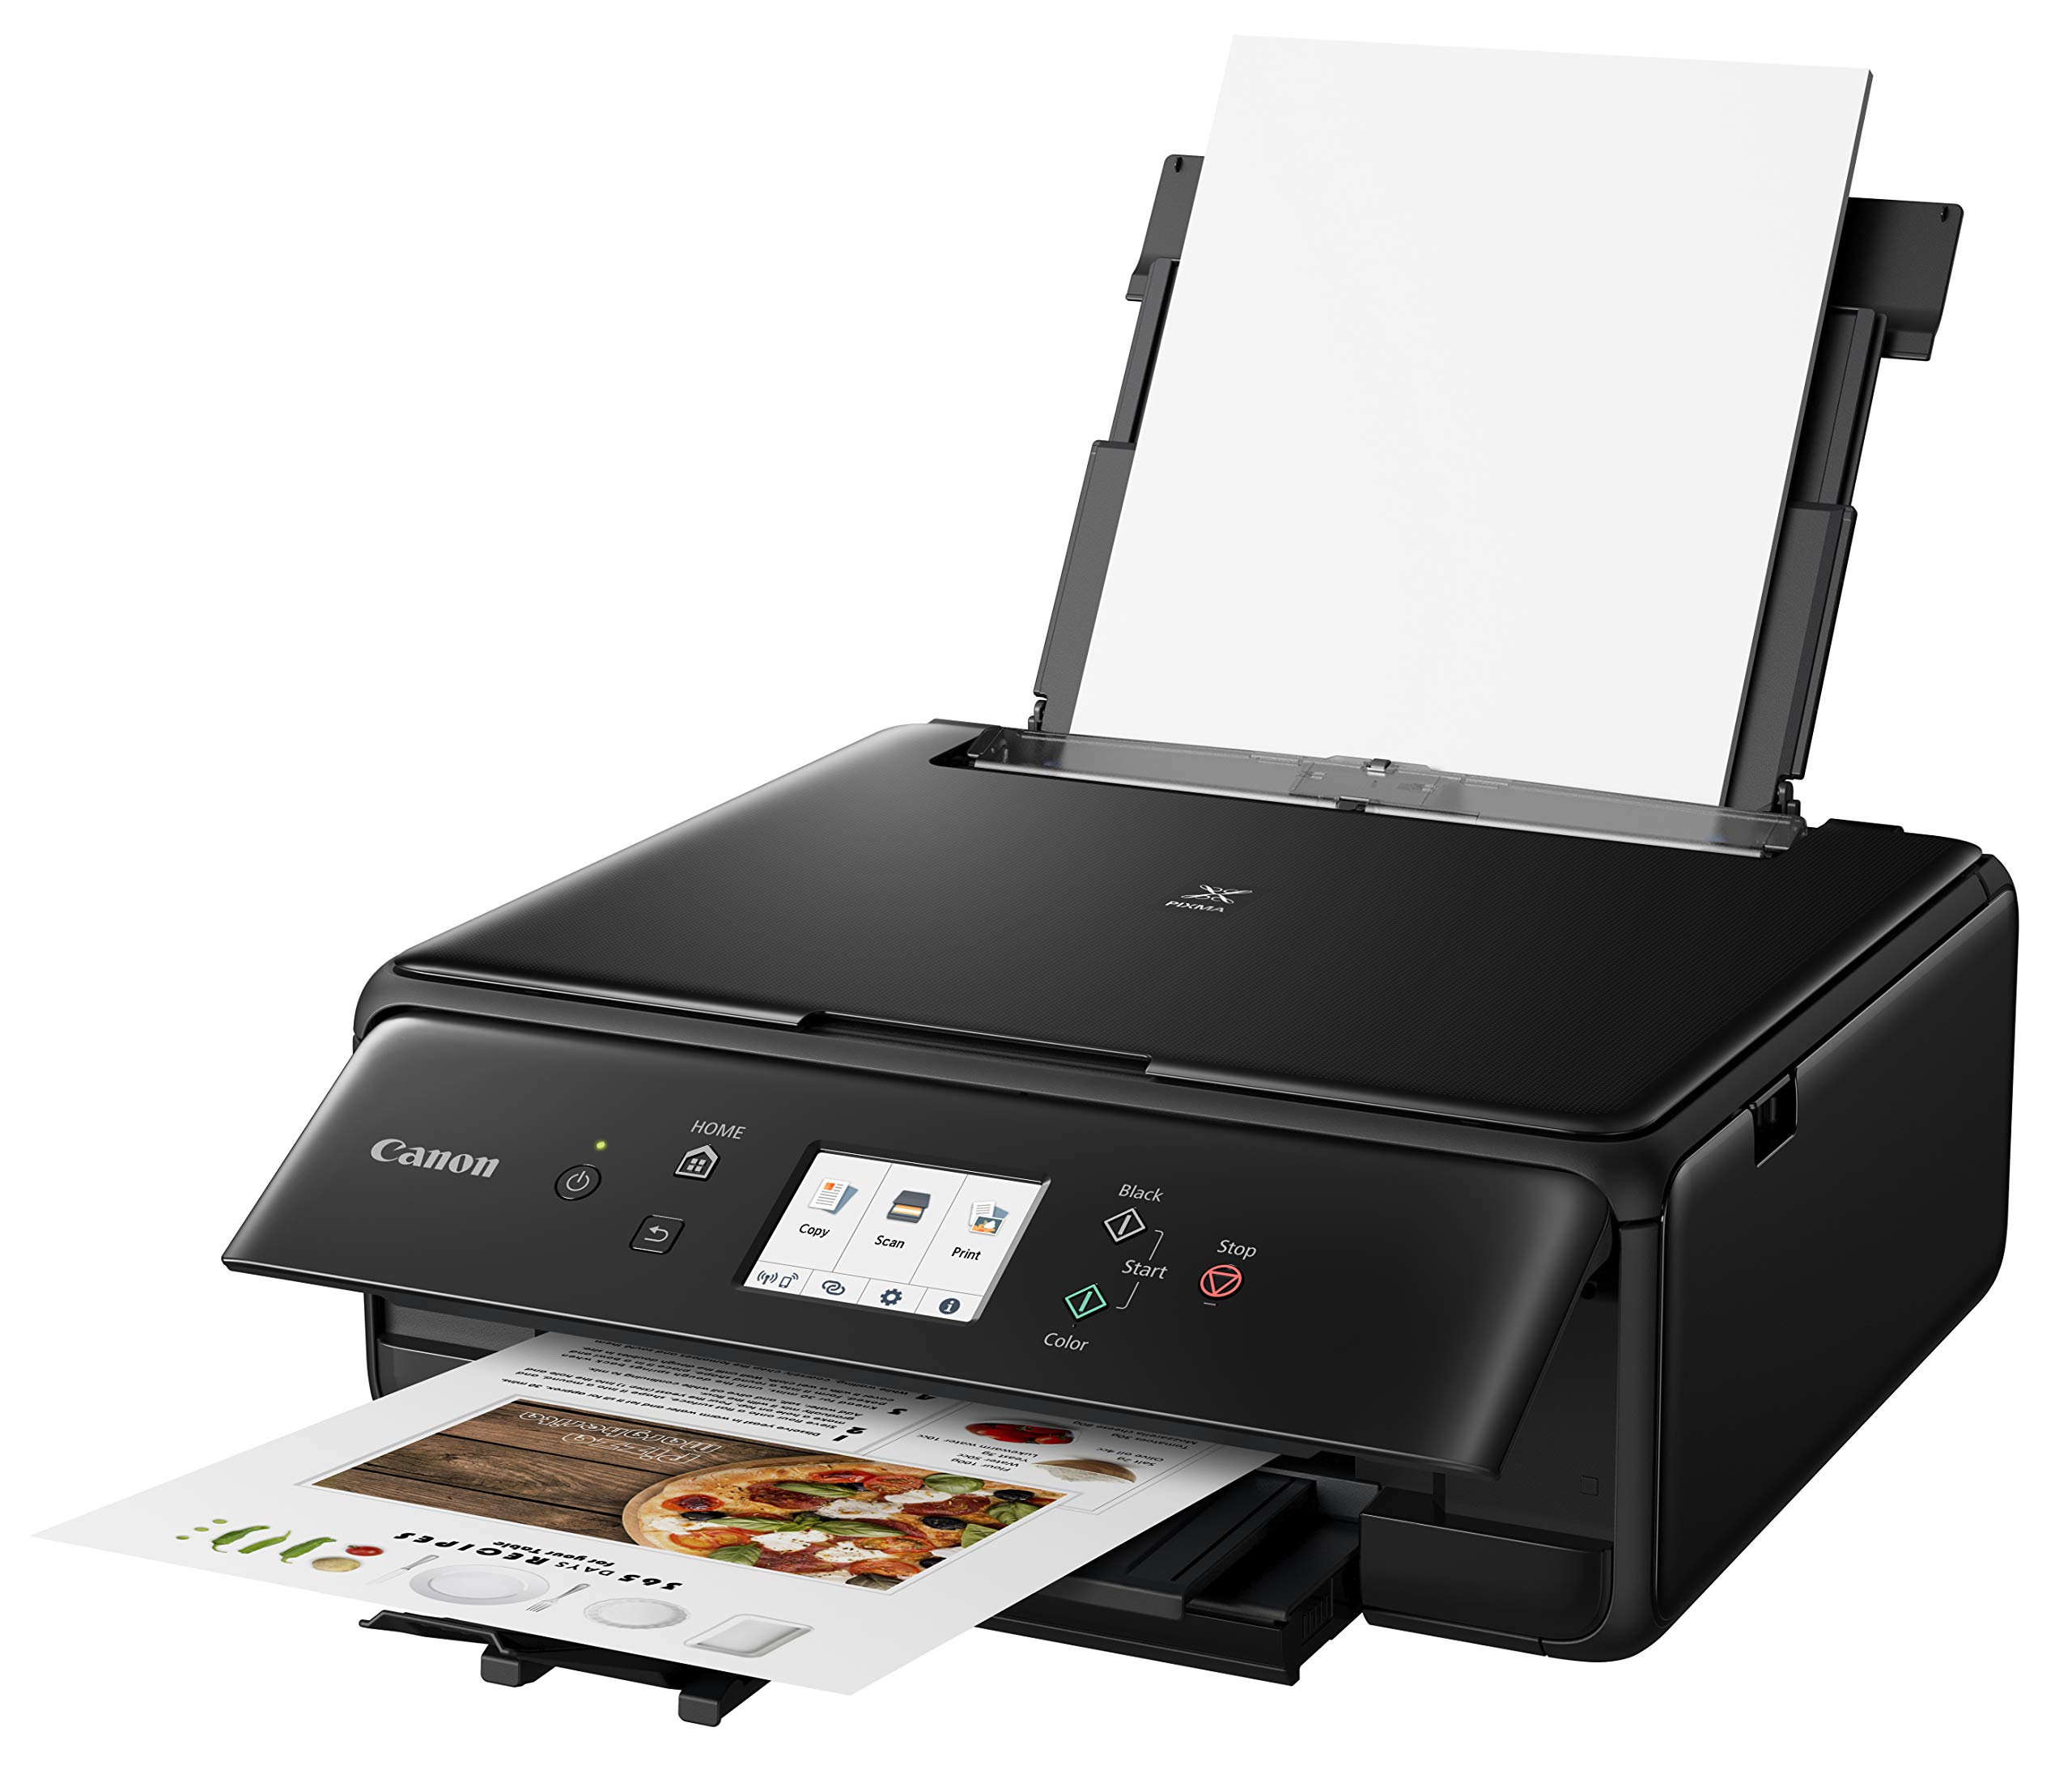 Canon 2986C002 PIXMA TS6220 Wireless All in One Photo Printer with Copier, Scanner and Mobile Printing, Black by Canon (Image #3)